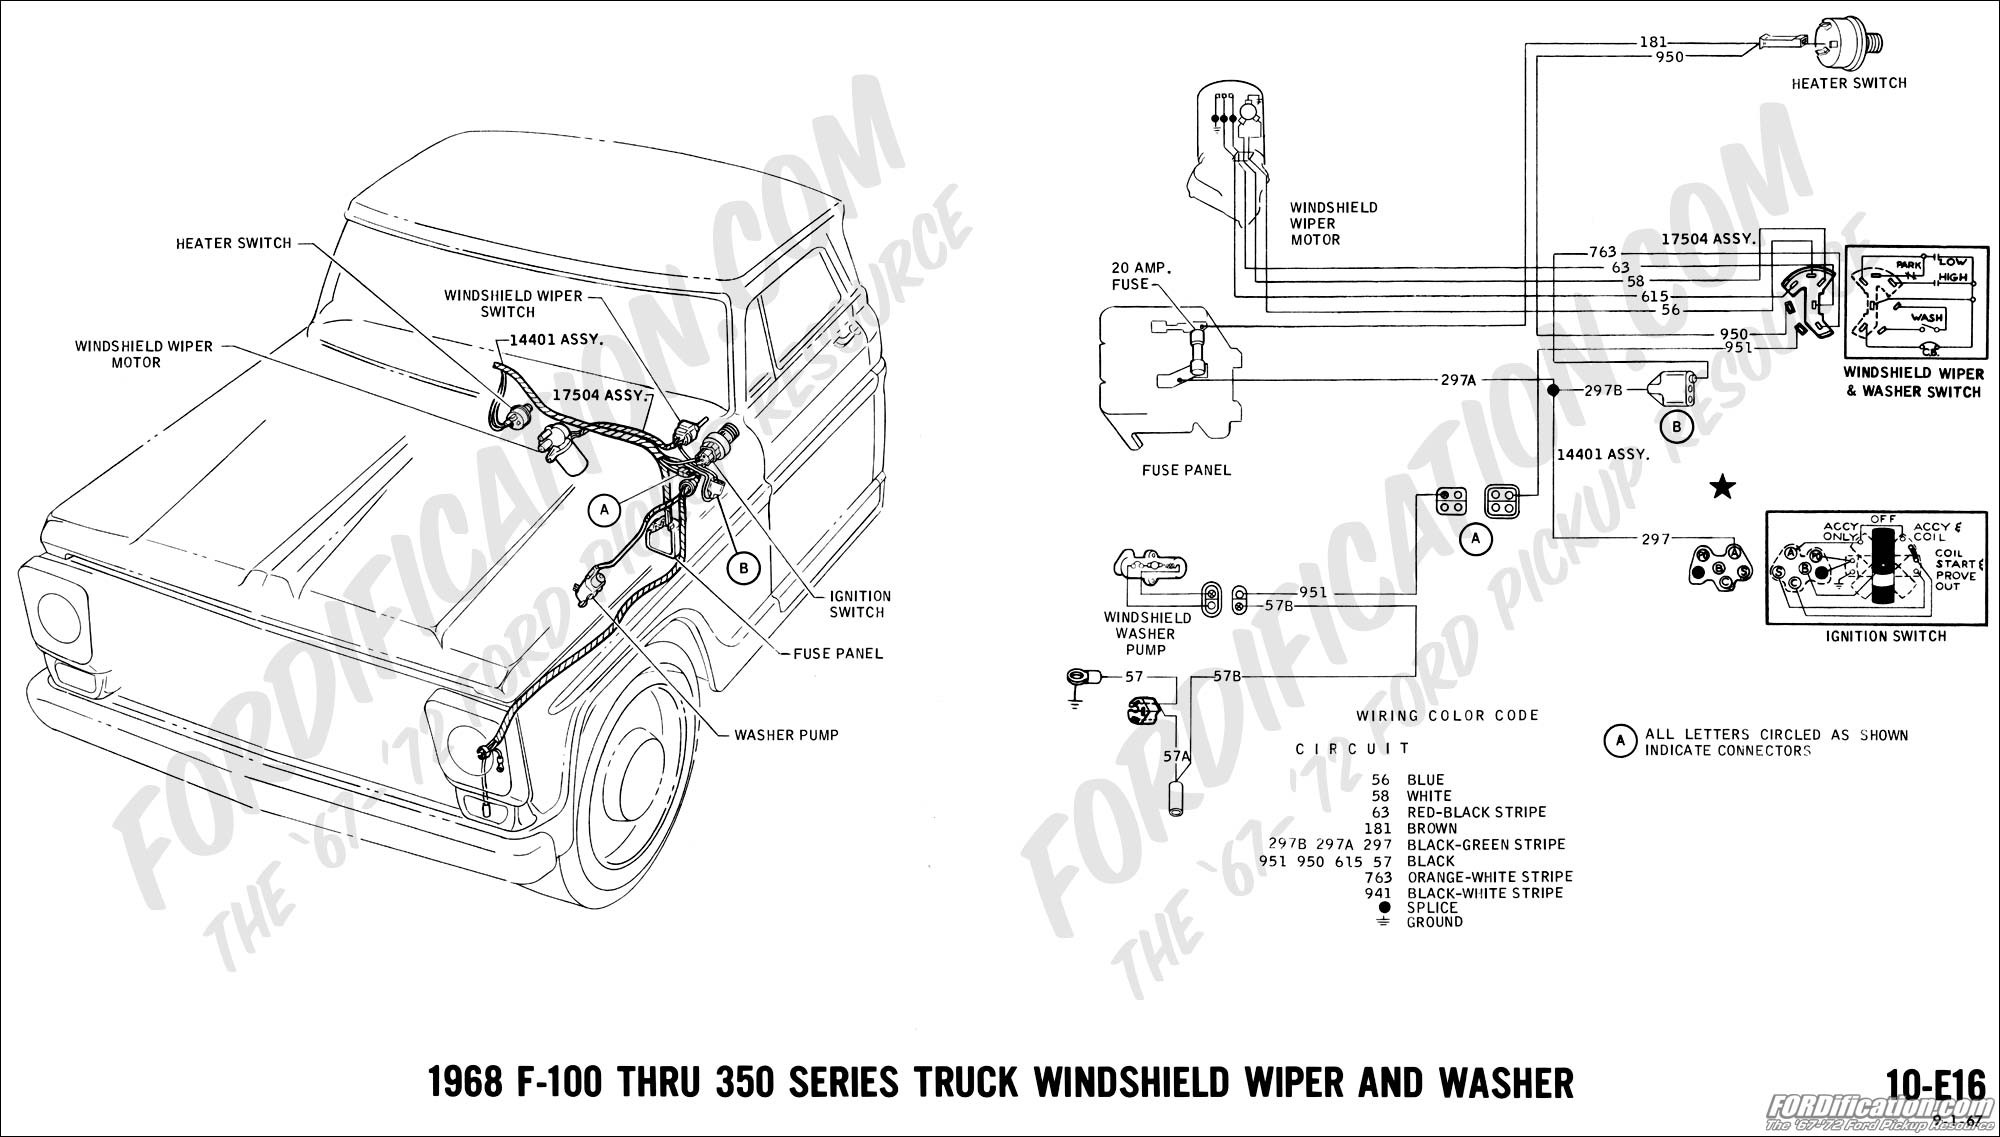 1994 Toyota Pickup Wiring Diagram Lexus Ls400 94 Fuse Box Ford Truck Technical Drawings And Schematics Section H Of